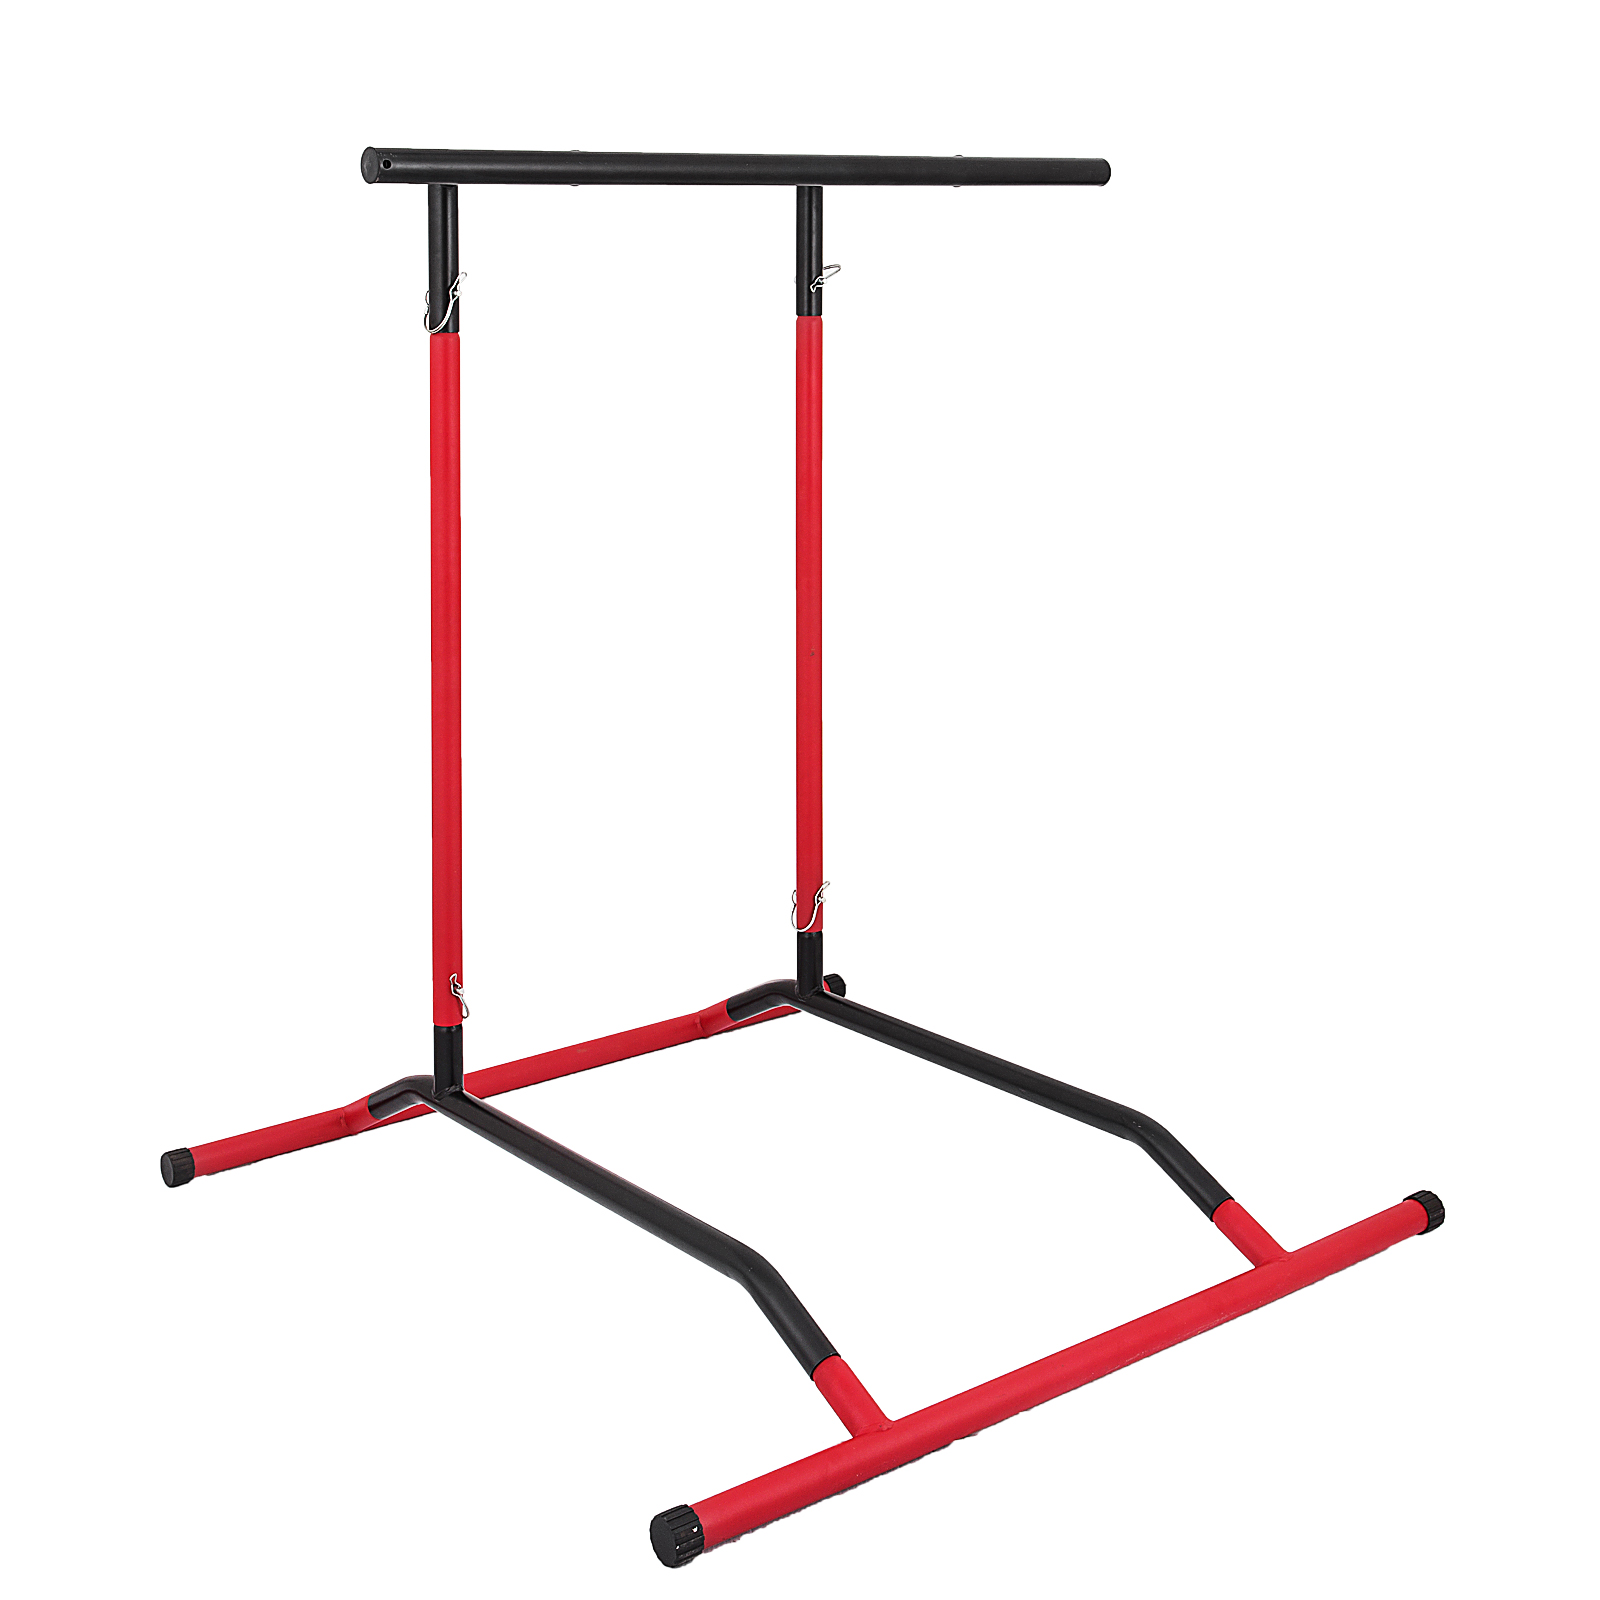 Portable-Power-Tower-for-Home-Gym-Workout-With-Dip-Station-And-Chin-Pull-Up-Bar thumbnail 15